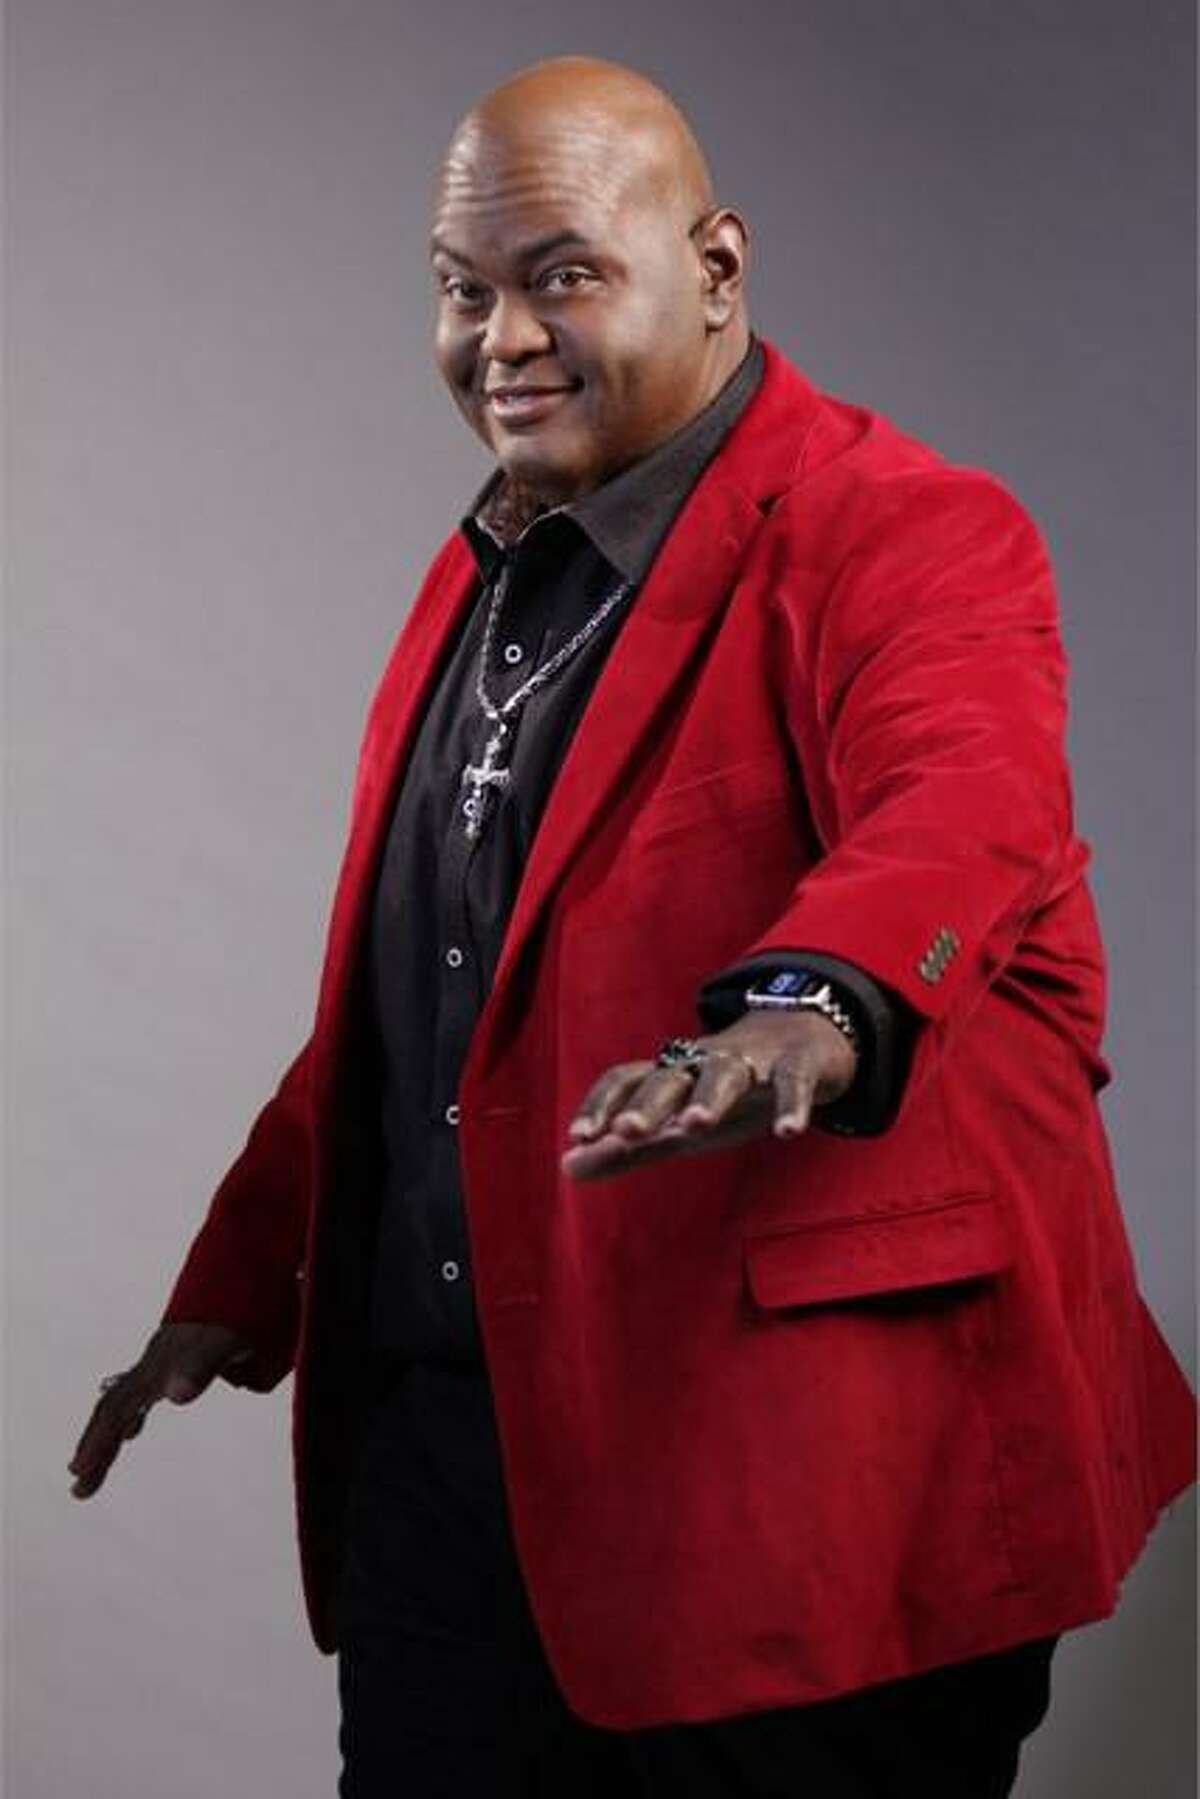 Lavell Crawford will take the stage at the Stress Factory in Bridgeport Jan. 28-30.